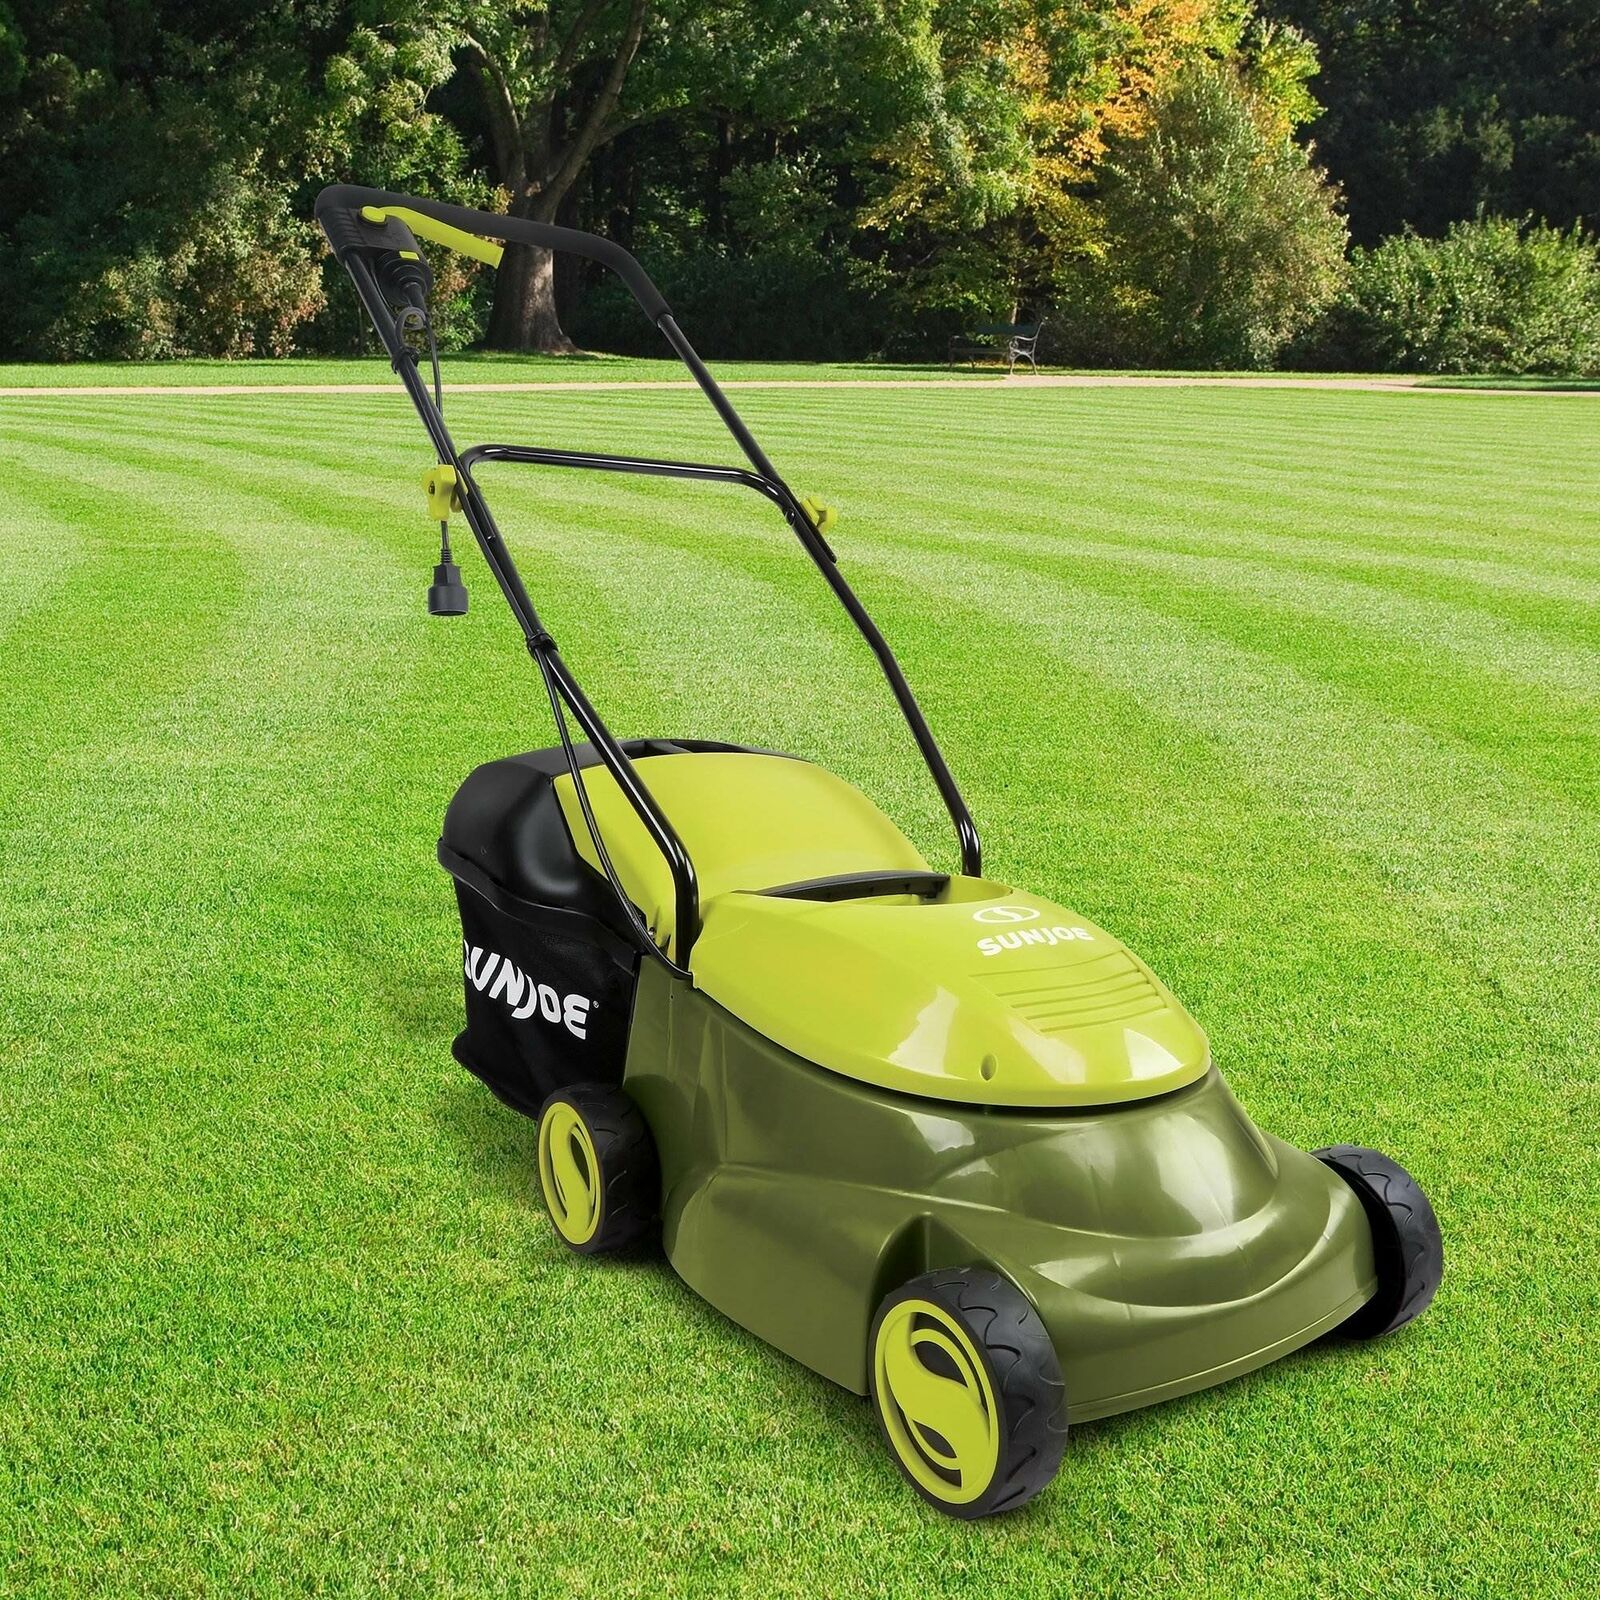 14 Inch 12 Amp Electric Corded Lawn Mower Push Behind Home G